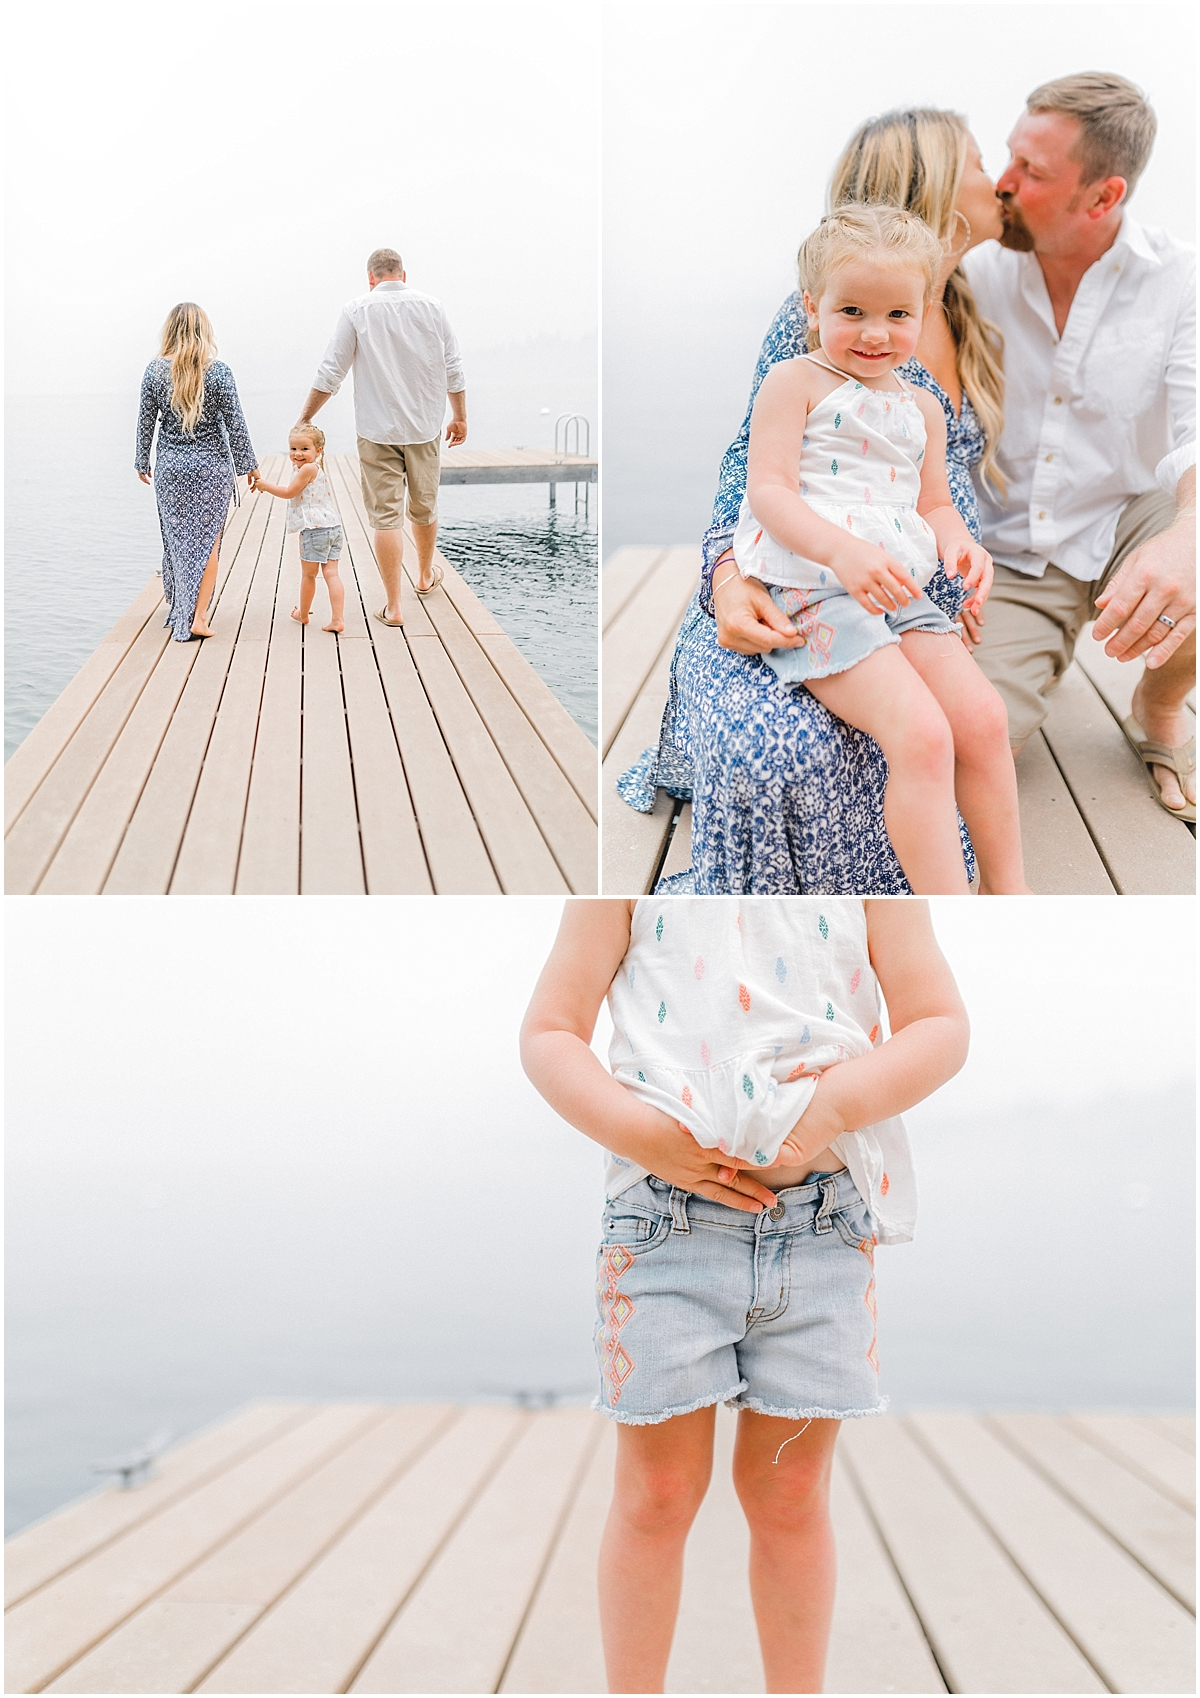 Emma Rose Company | PNW Family Portrait Photographer | Light and Airy Photography Style | What to Wear to Family Pictures | Kindred Presets | Lake Chelan Wedding Portrait Photographer_0093.jpg